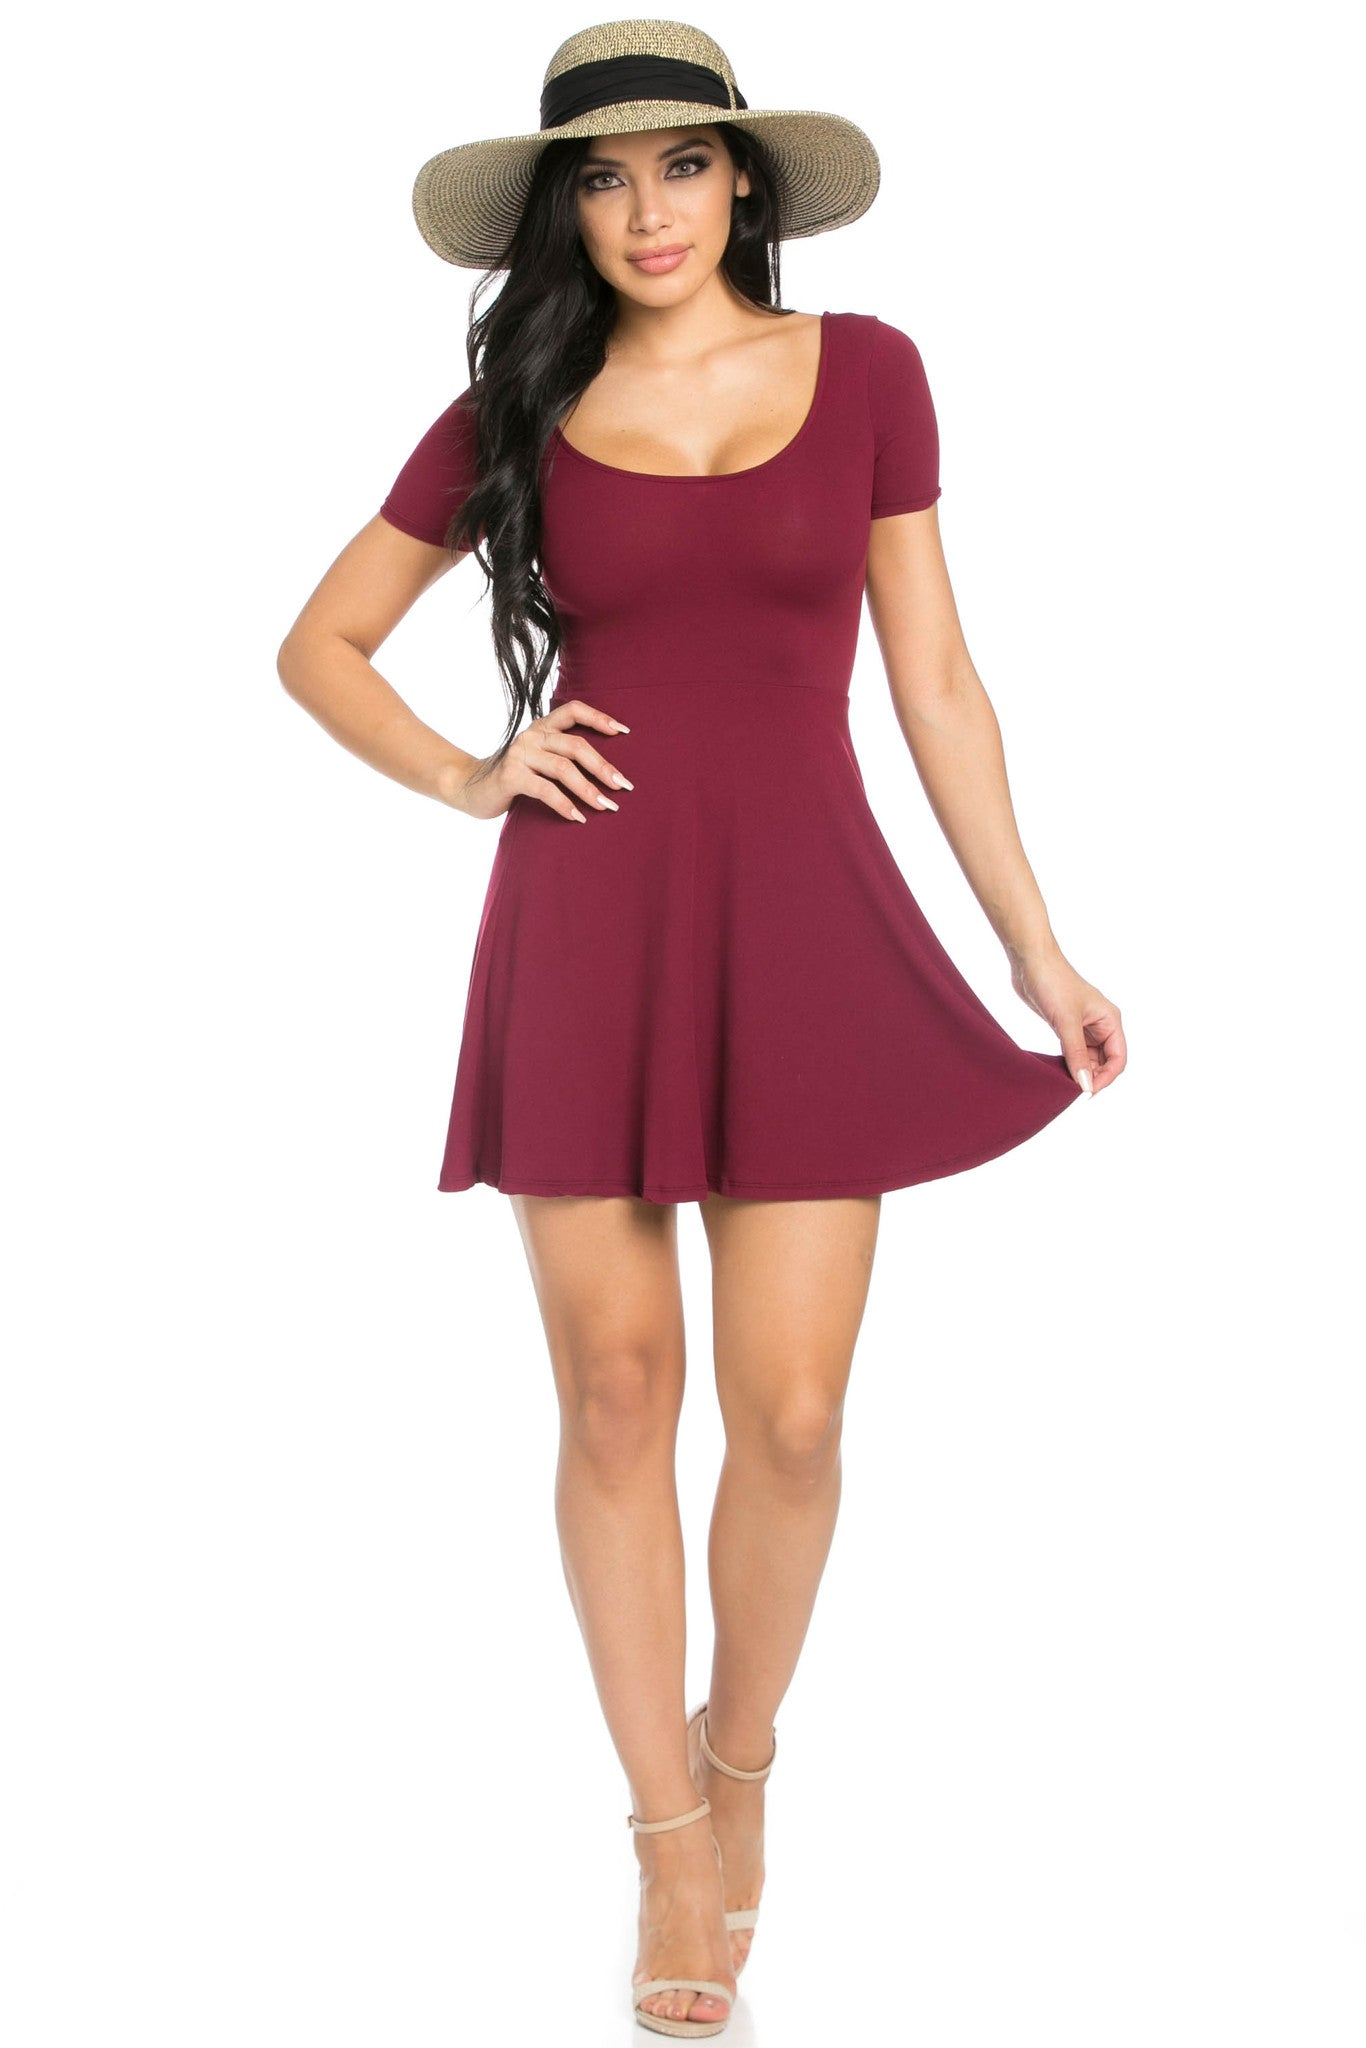 Micro Suede Burgundy Mini Dress - Dresses - My Yuccie - 5